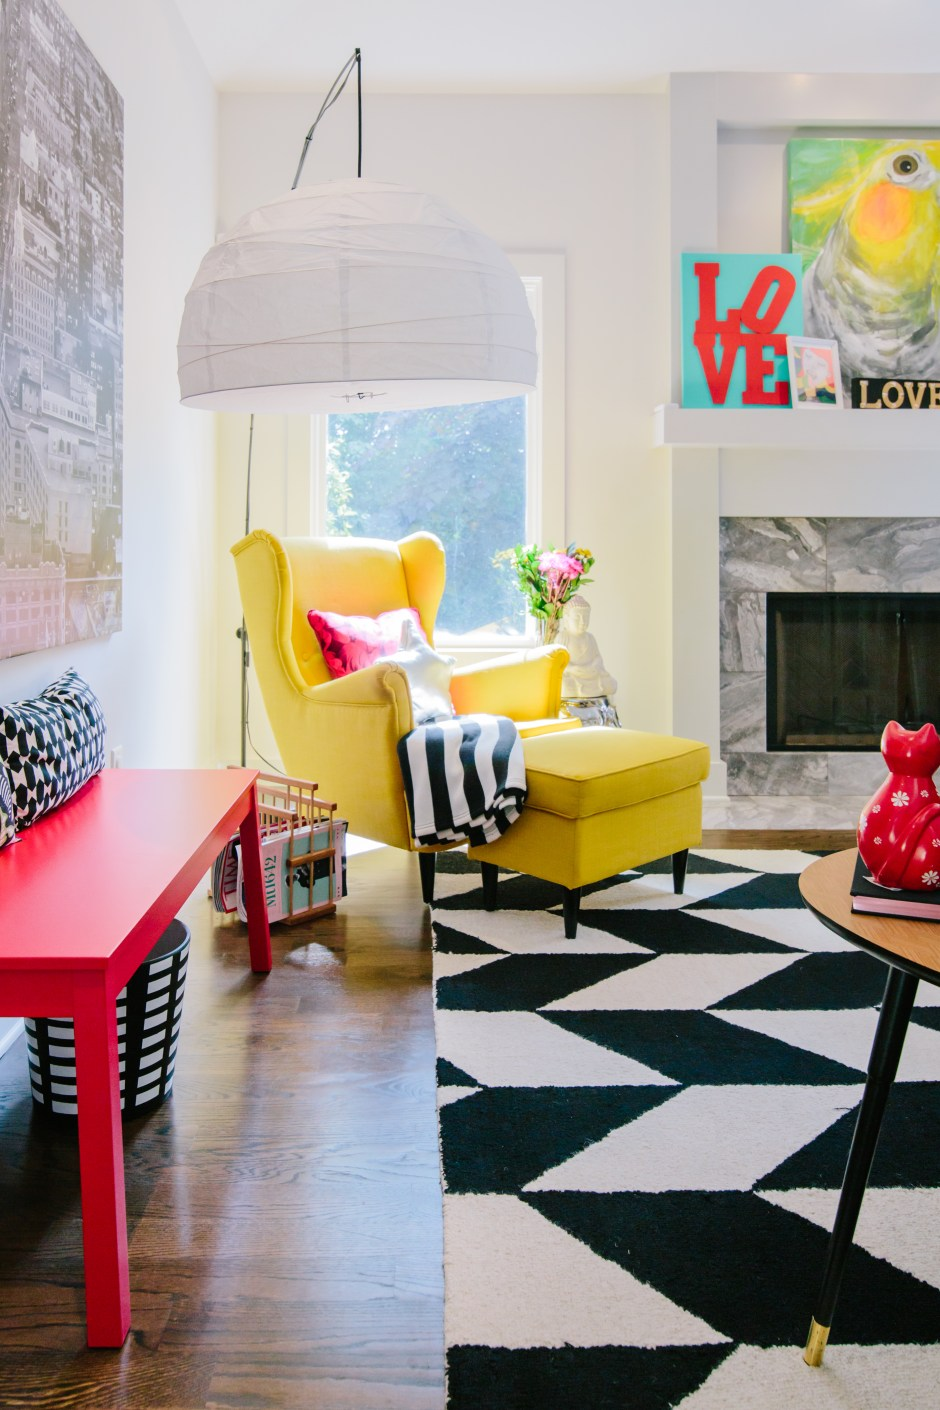 The Creative, Bold & Colourful Home of Paola Roder | Living room seating area using vibrant colour palette and bold pattern to create visual energy and an element of fun.